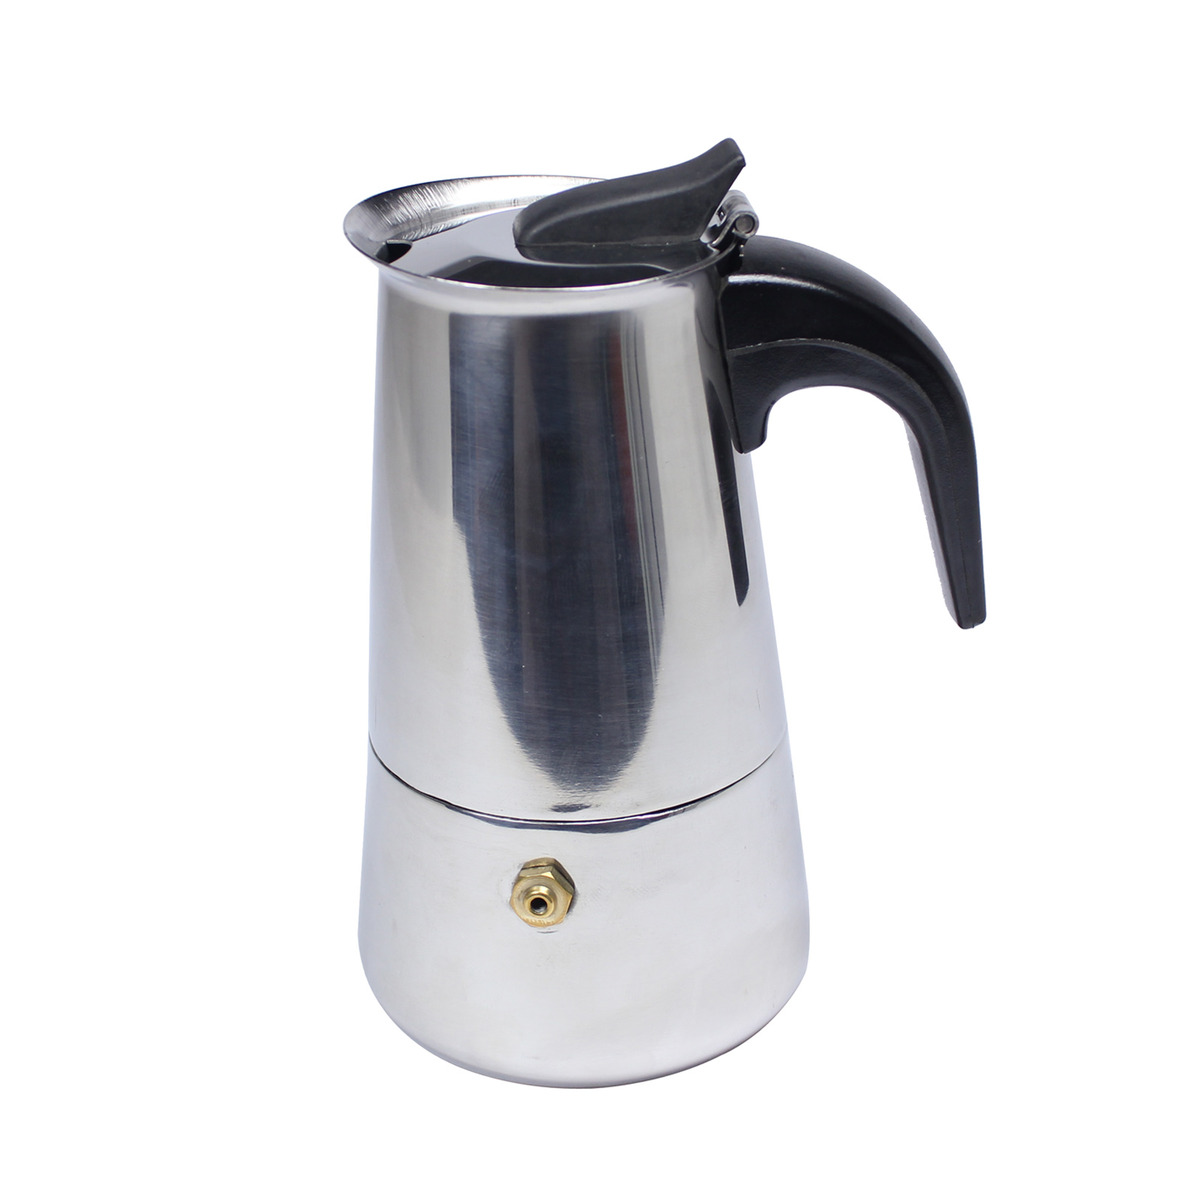 Italian Coffee Maker Stainless Steel : Italian 6-Cup Stainless Steel Expresso Coffee Maker MOKA POT+ GASKET HJ360C eBay